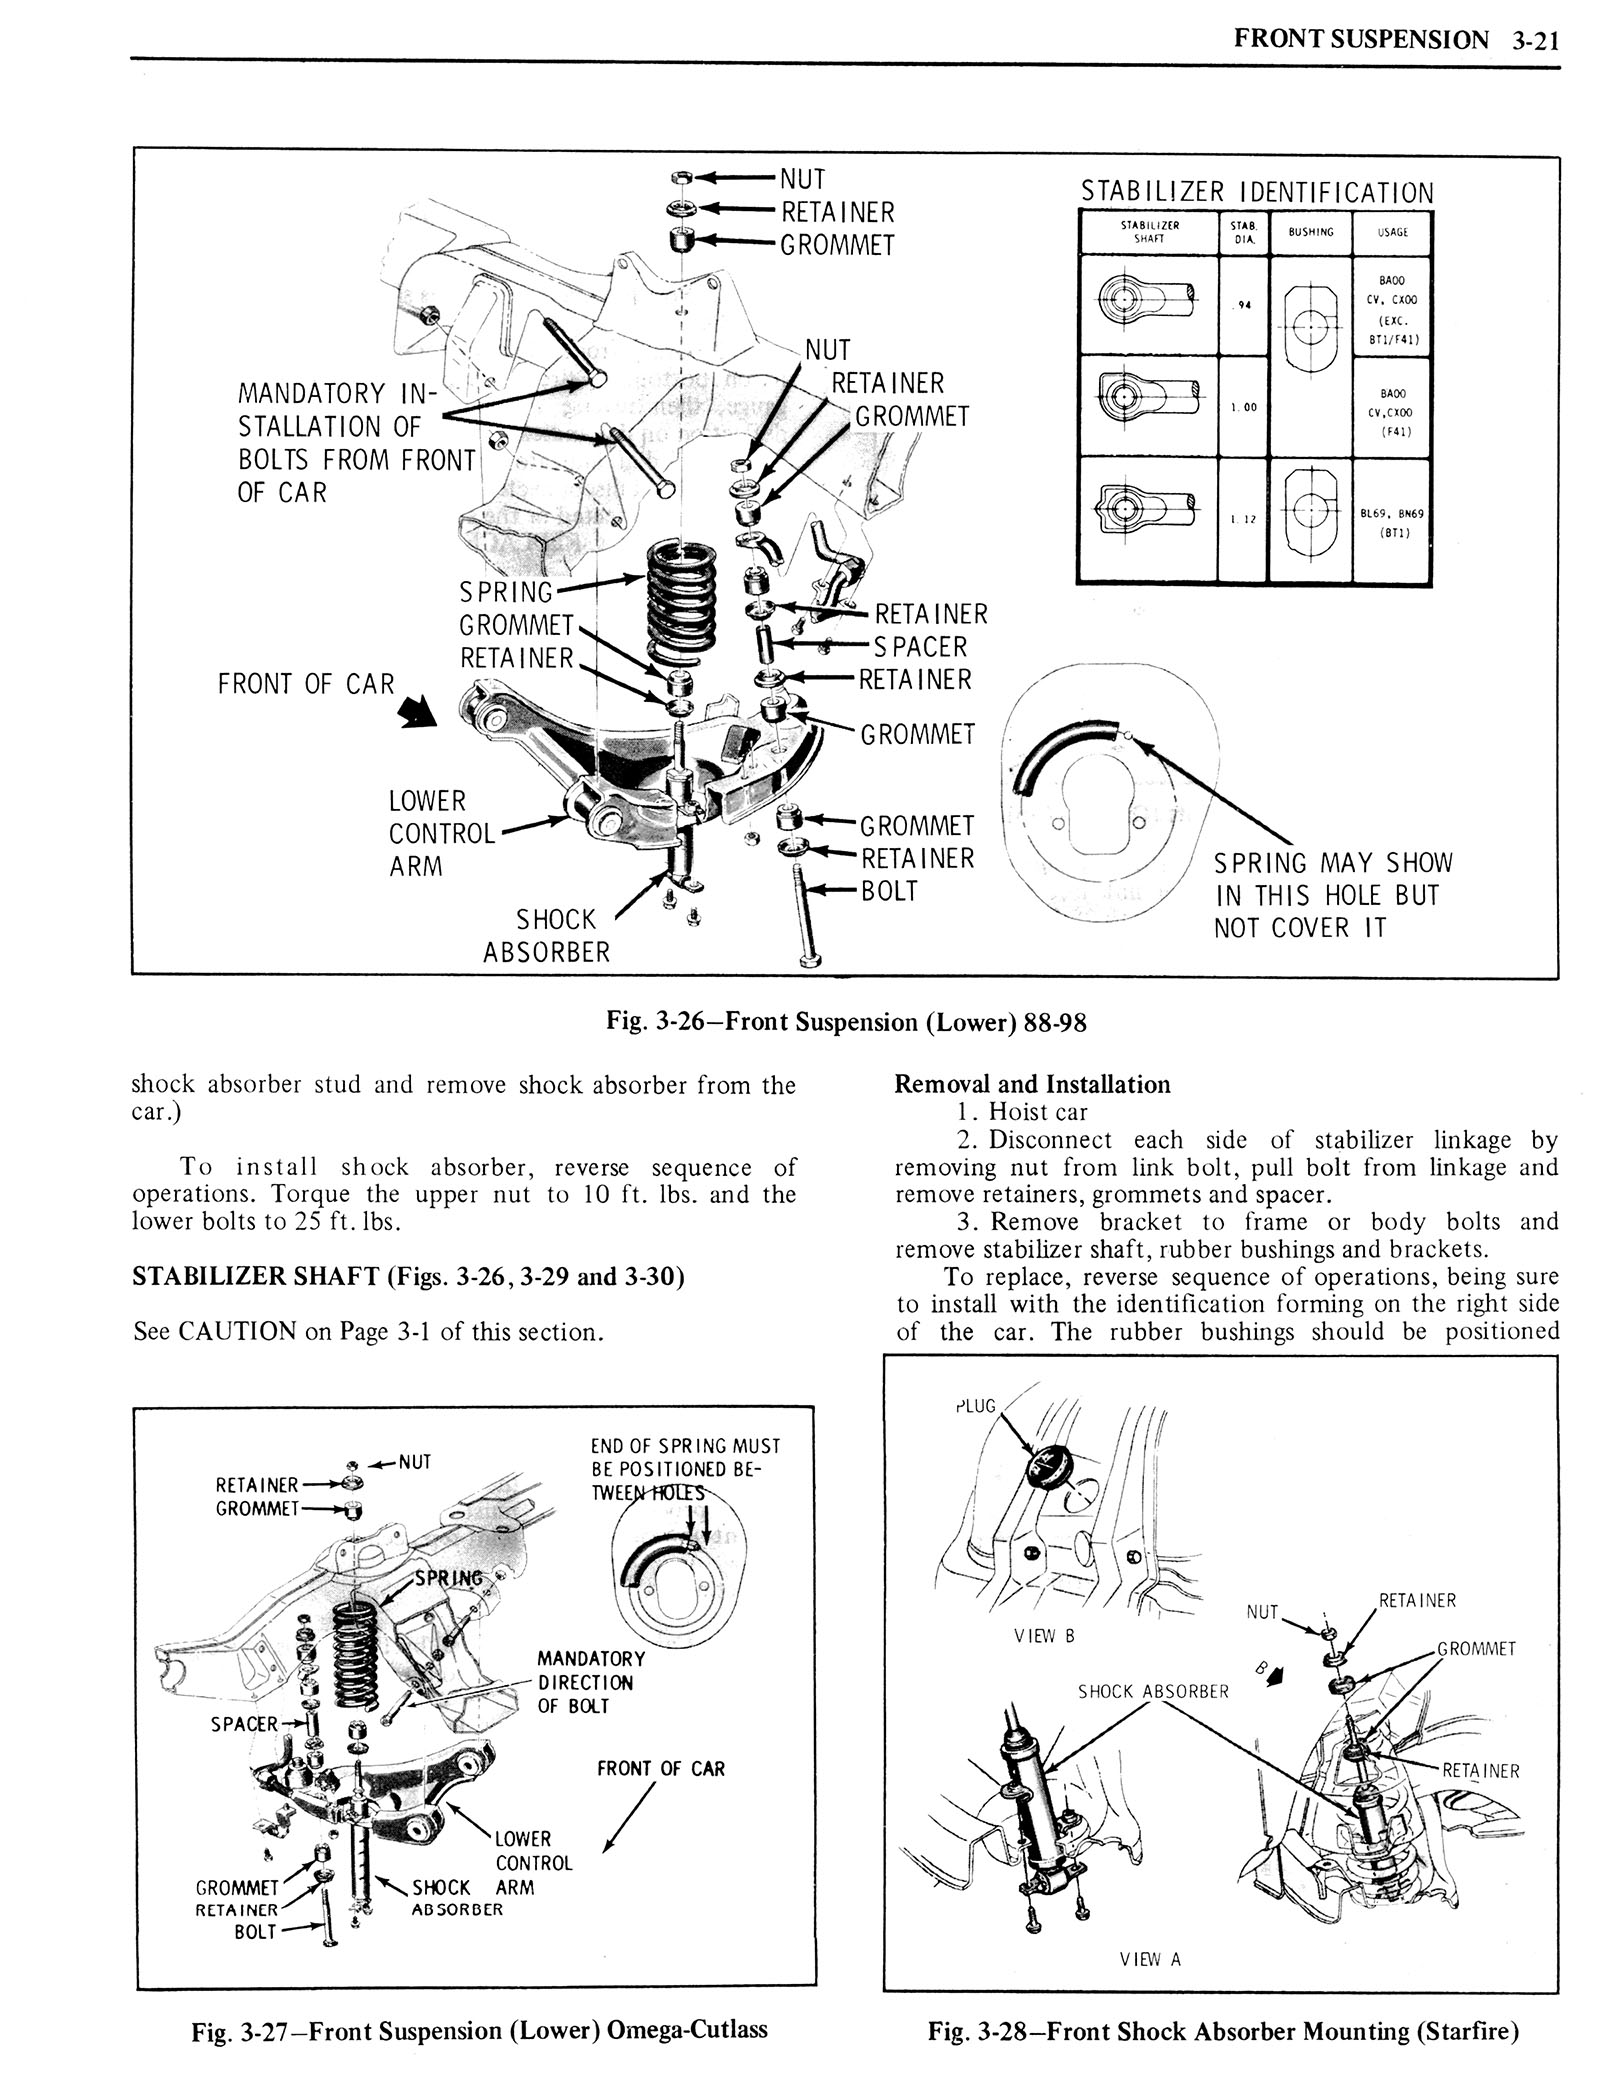 1976 Oldsmobile Service Manual page 193 of 1390